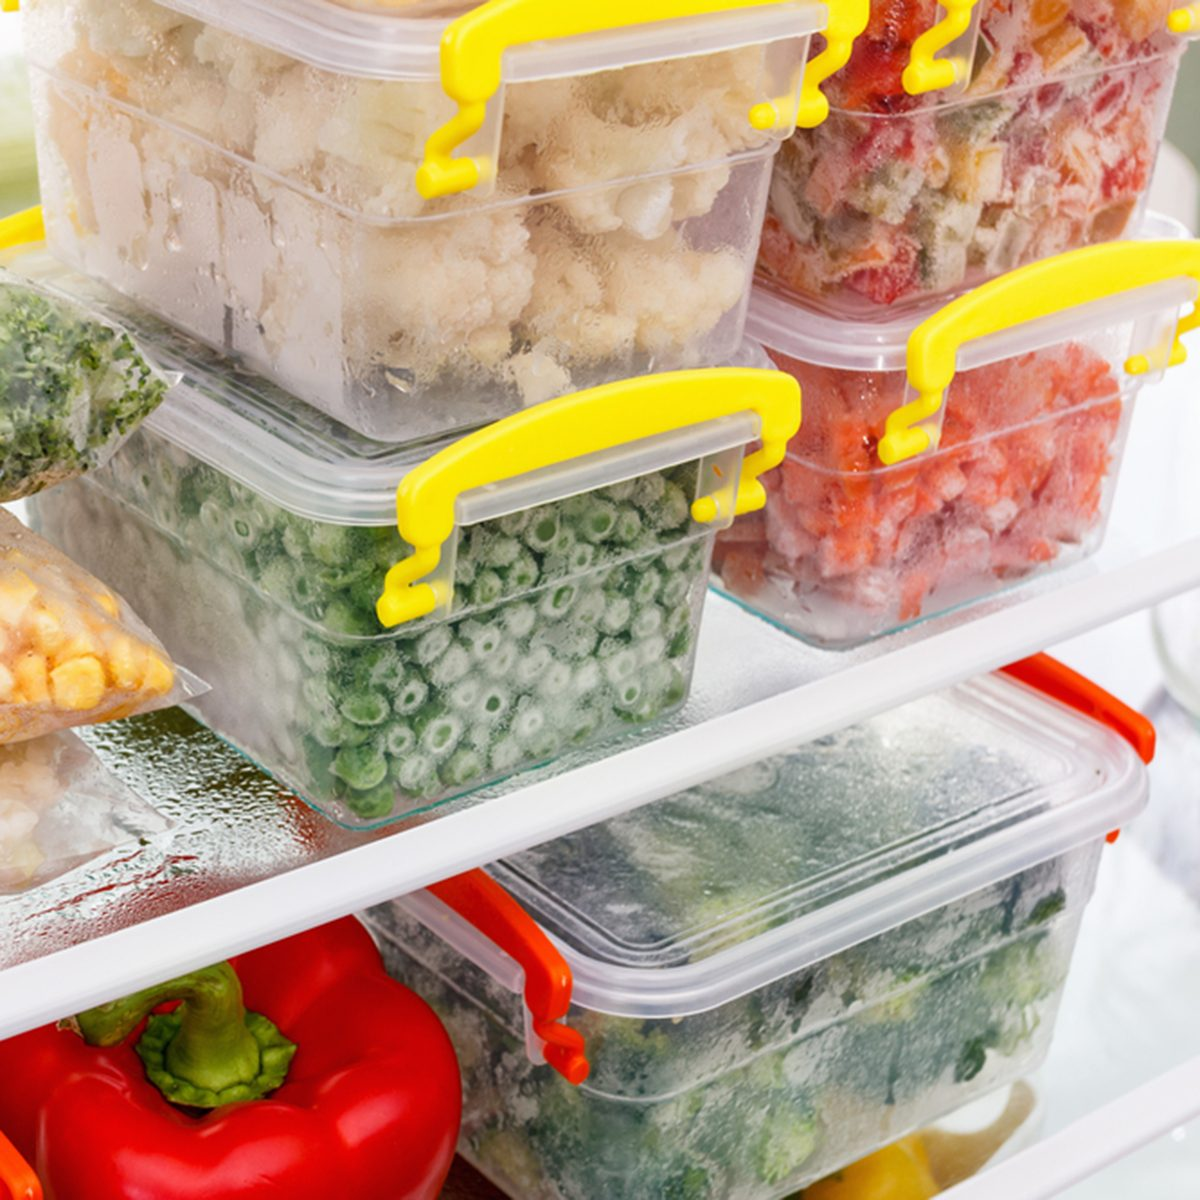 Frozen food in the refrigerator.